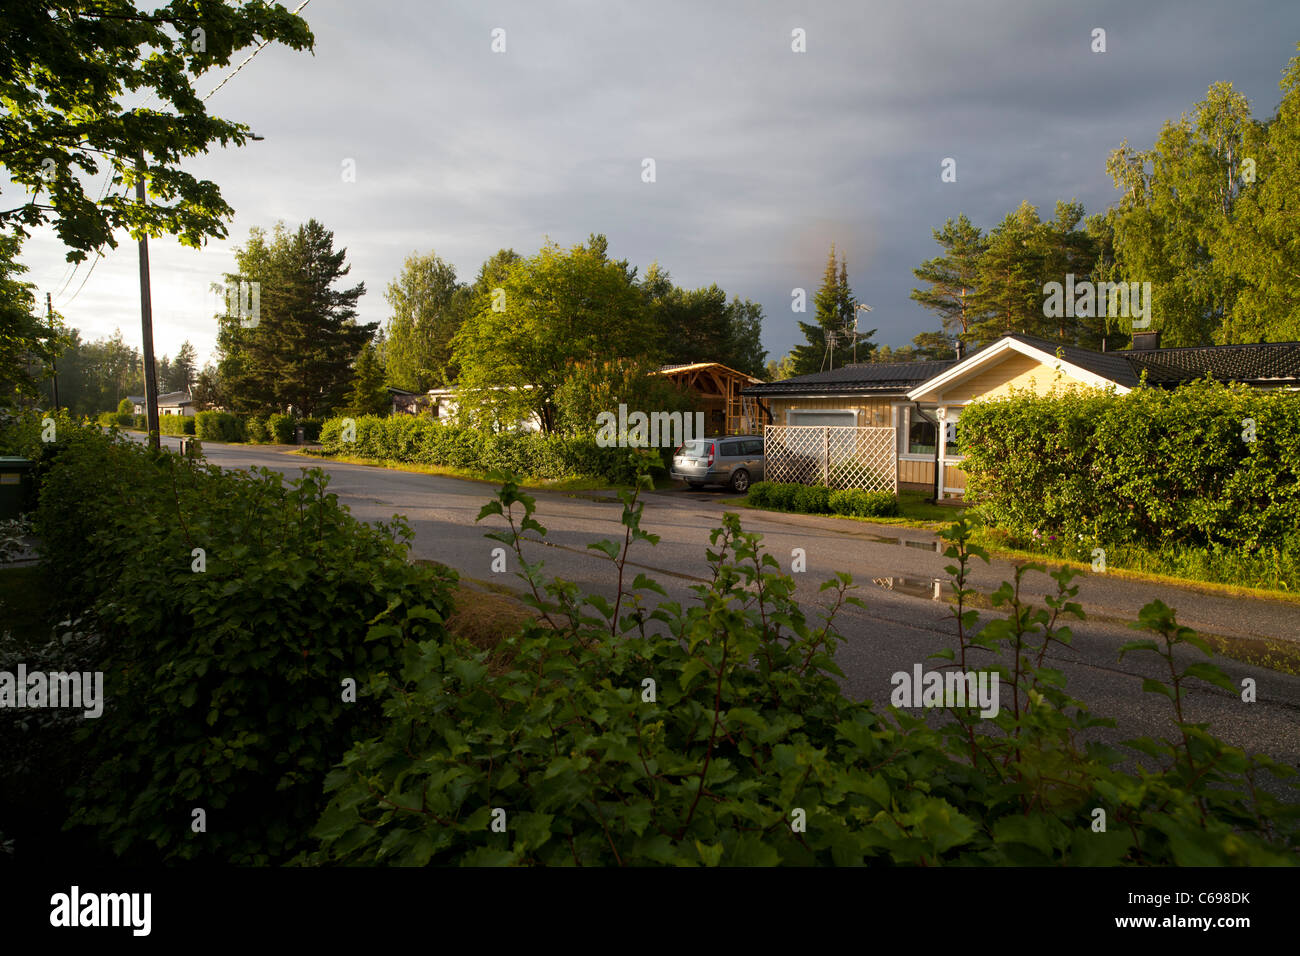 Houses in Finnish suburb , Finland - Stock Image